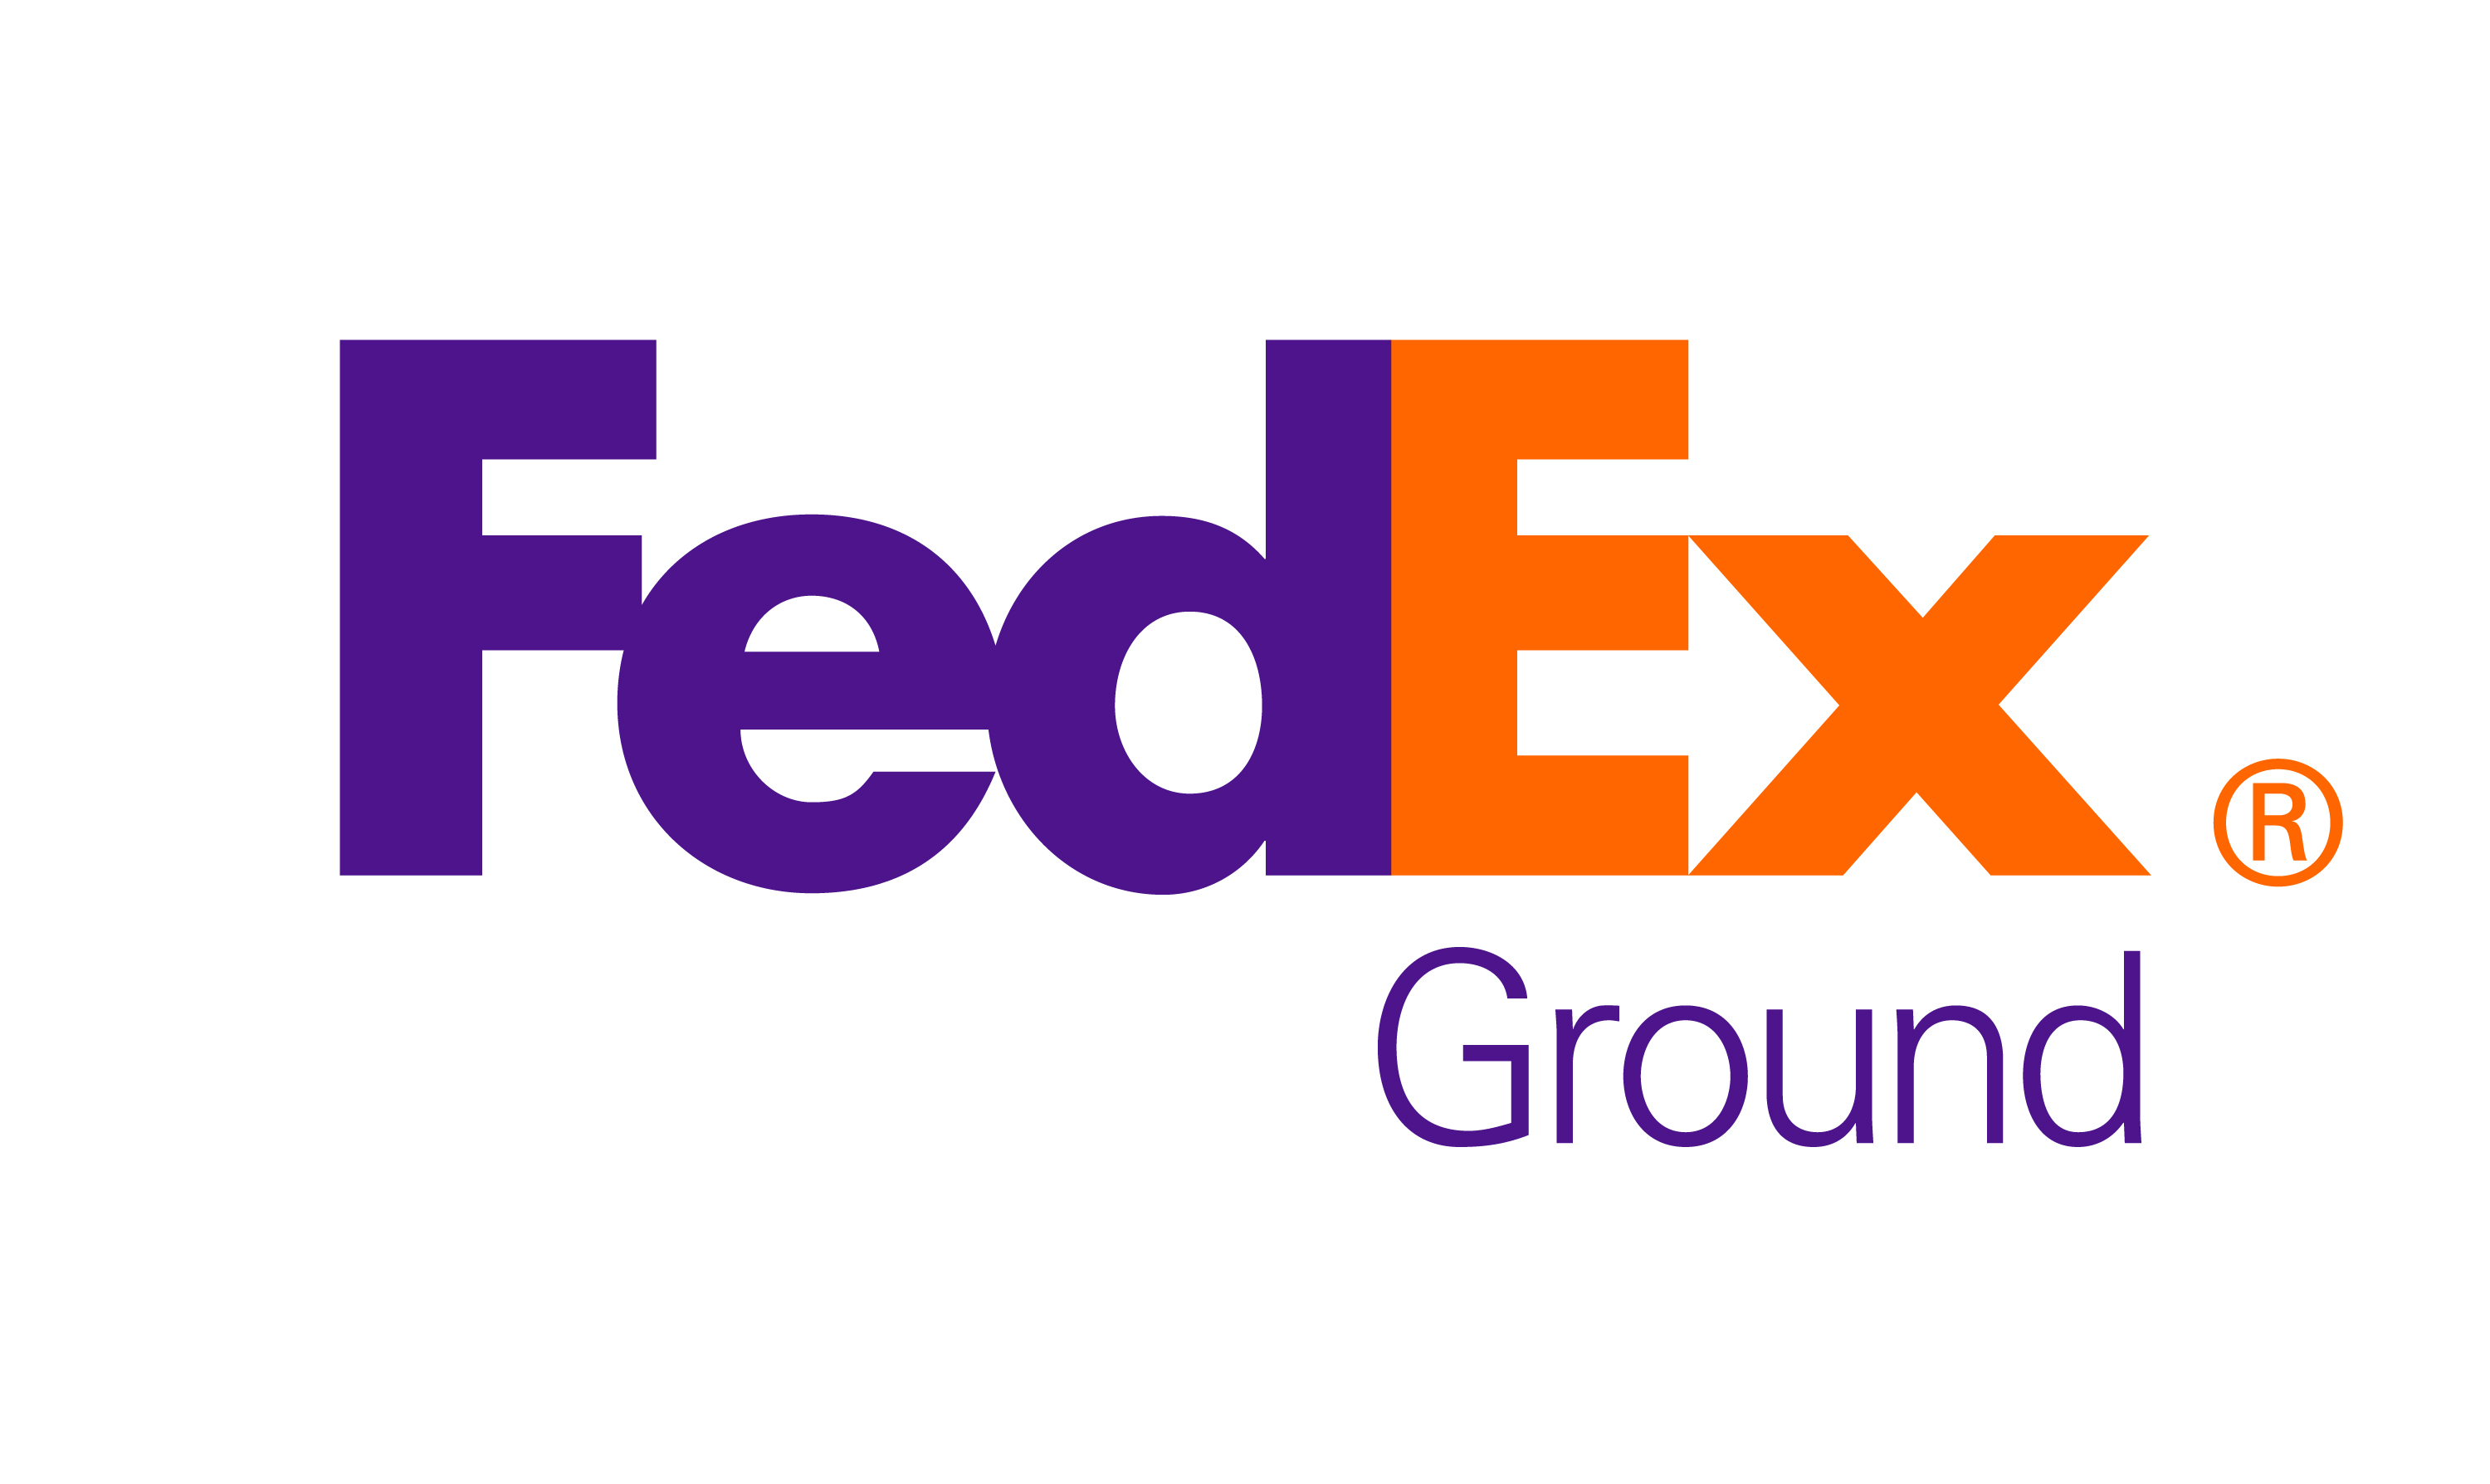 001 FedEx (Chapter)